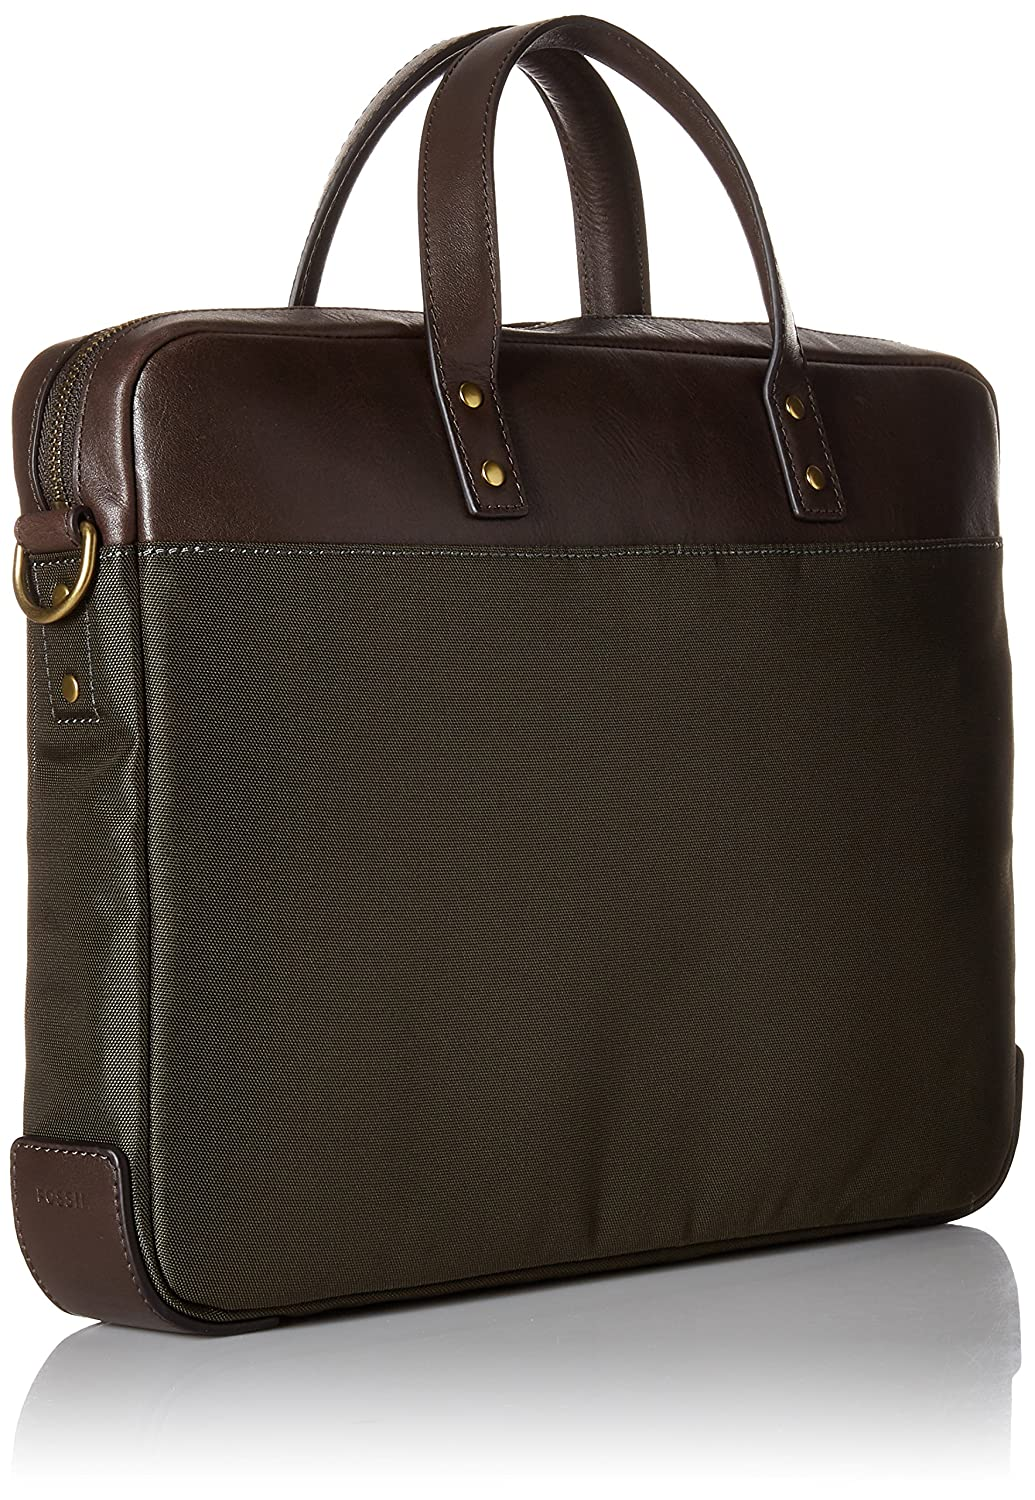 4c9da0dd7 Amazon.com | Fossil Men's Haskell Workbag, Haskell Single Zip Leather  Brief-Green | Briefcases